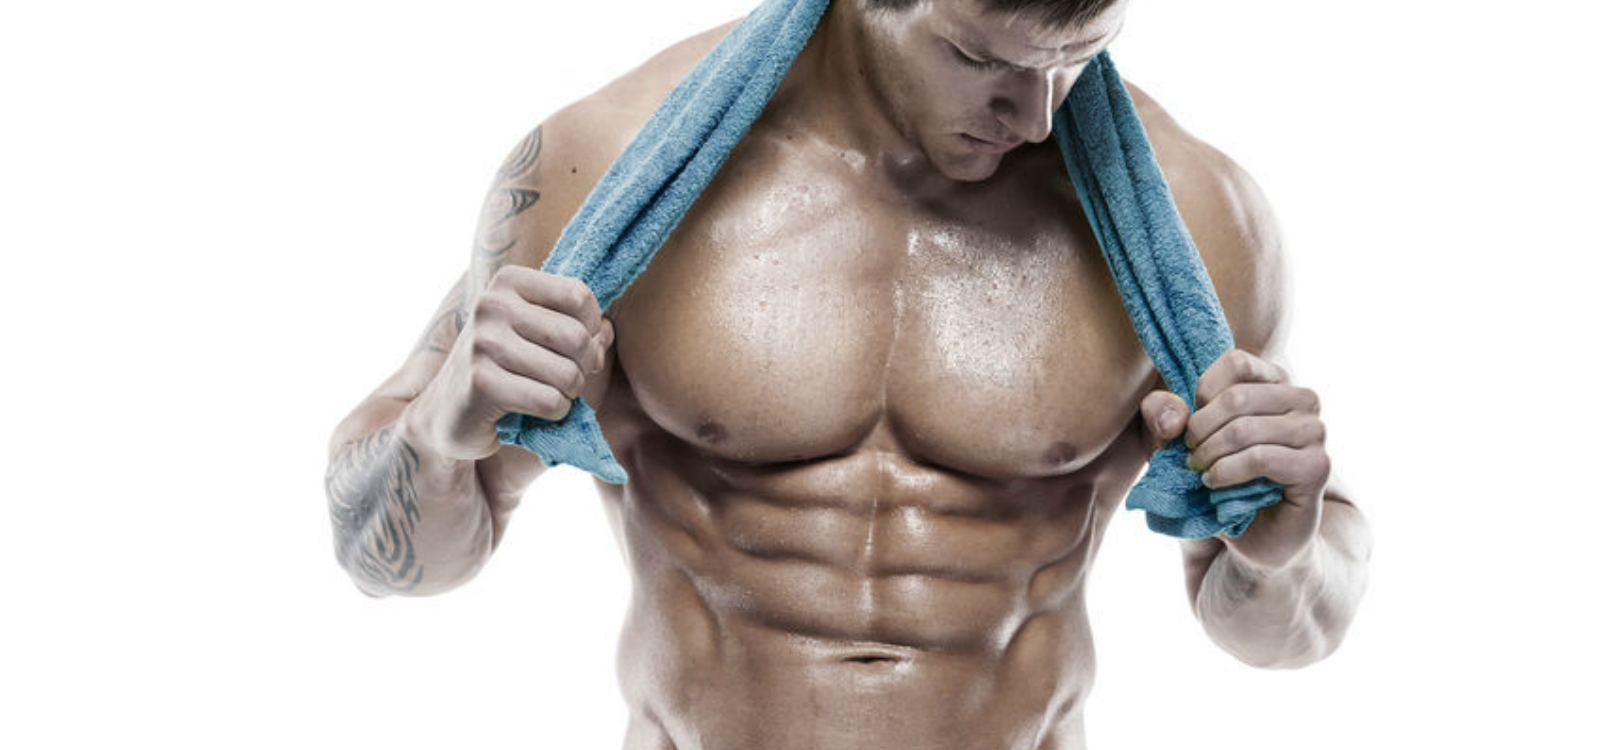 gain muscle without gaining weight